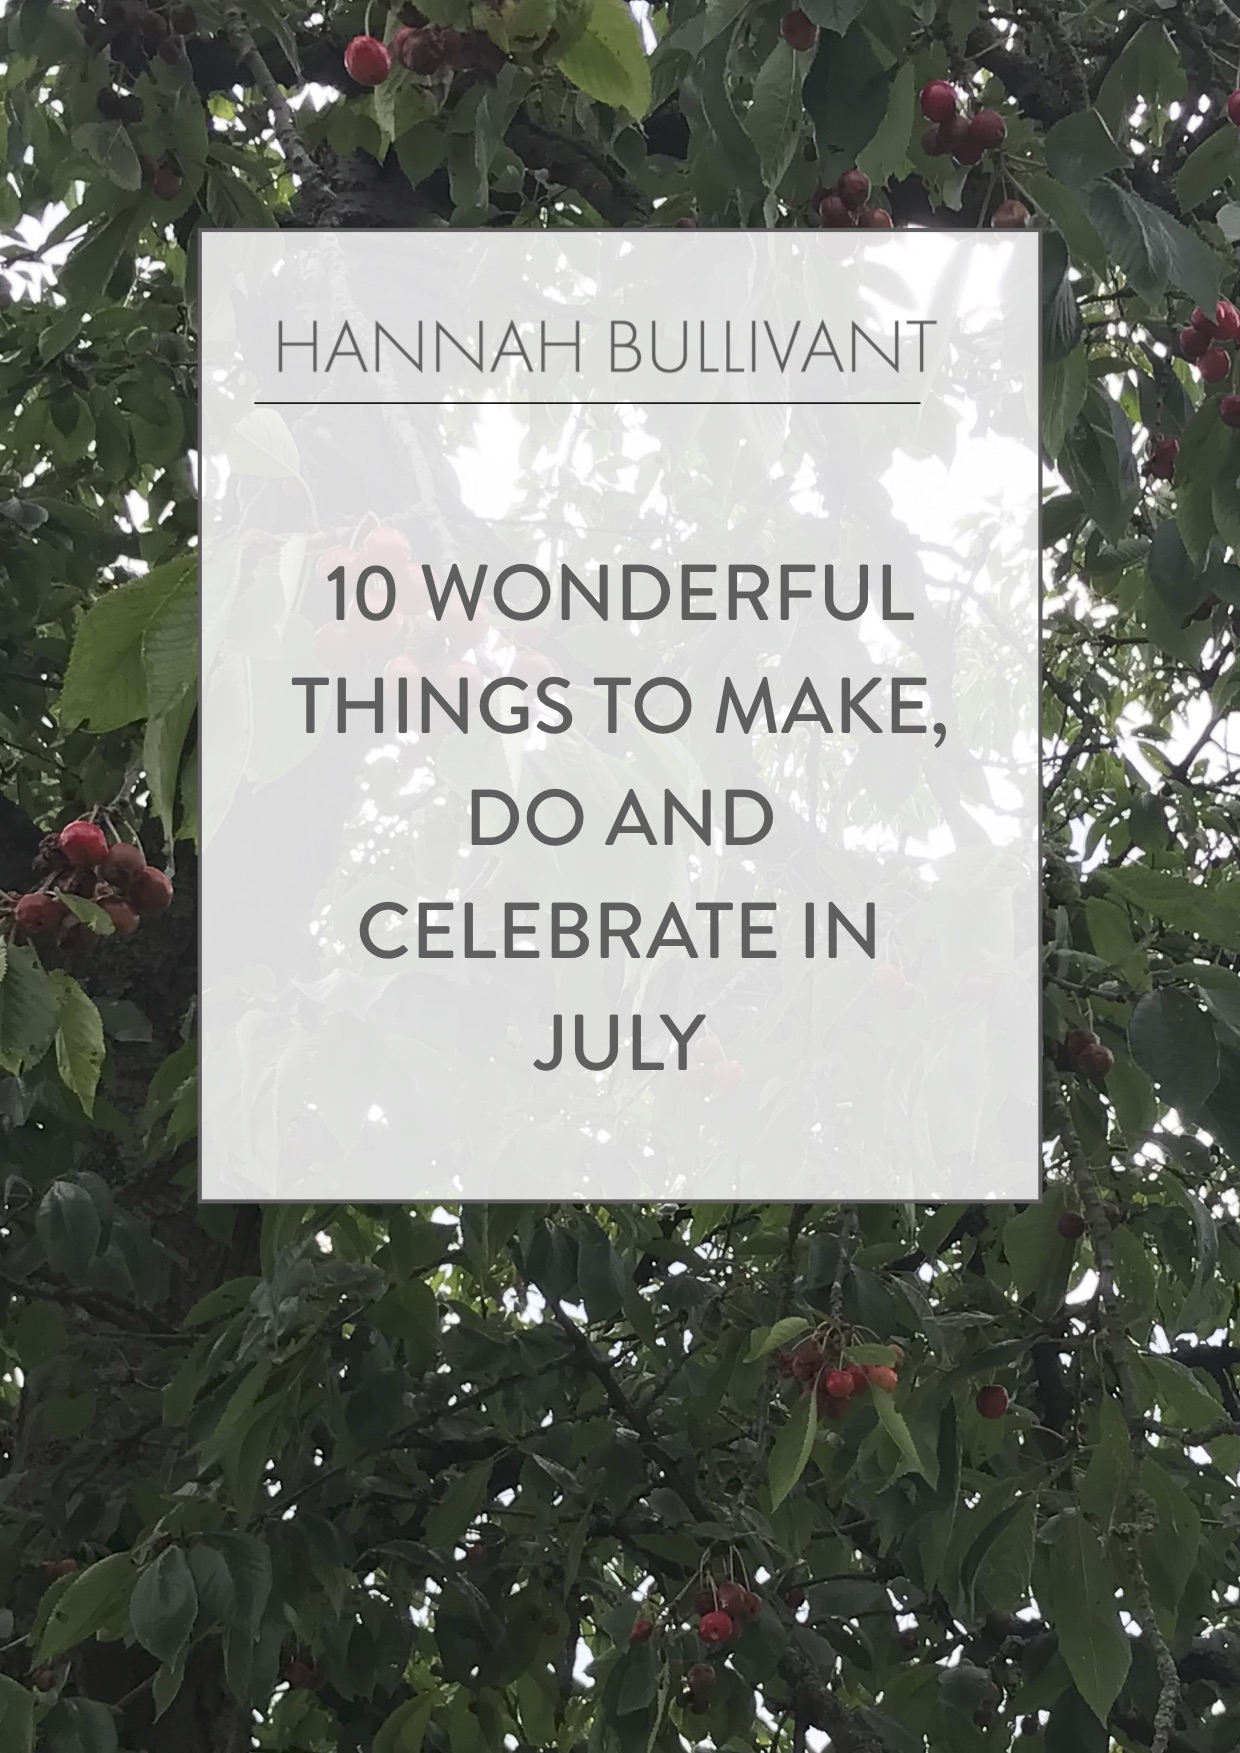 10 wonderful things to make, do and celebrate in July